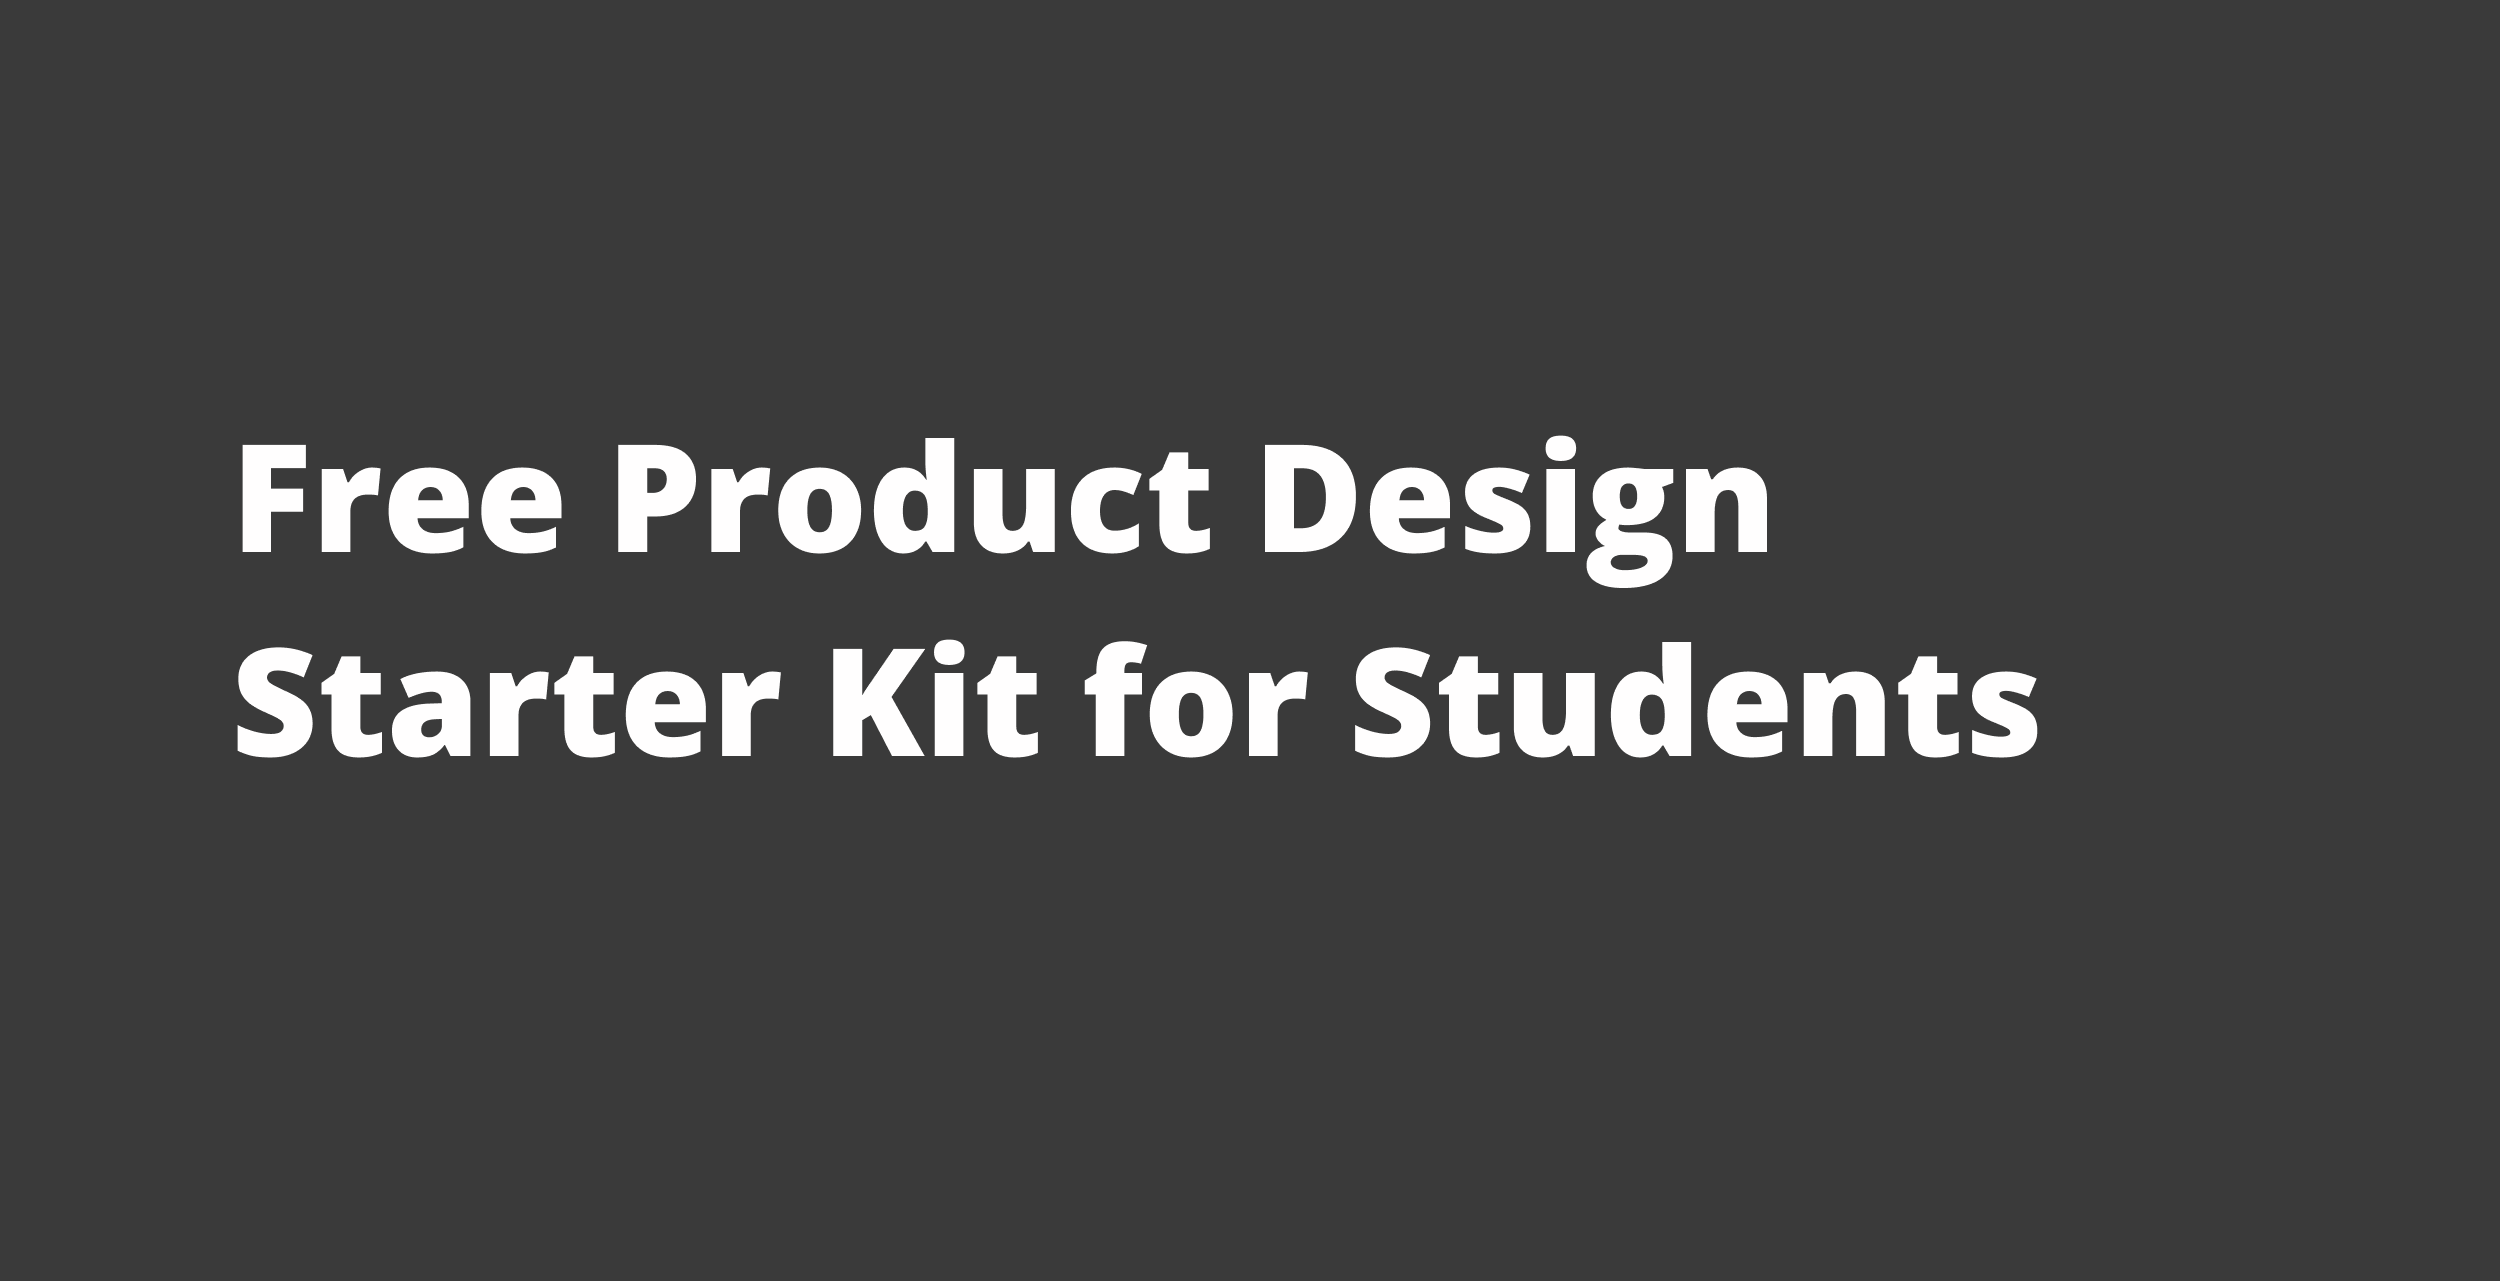 Free Product Design Kit for Students